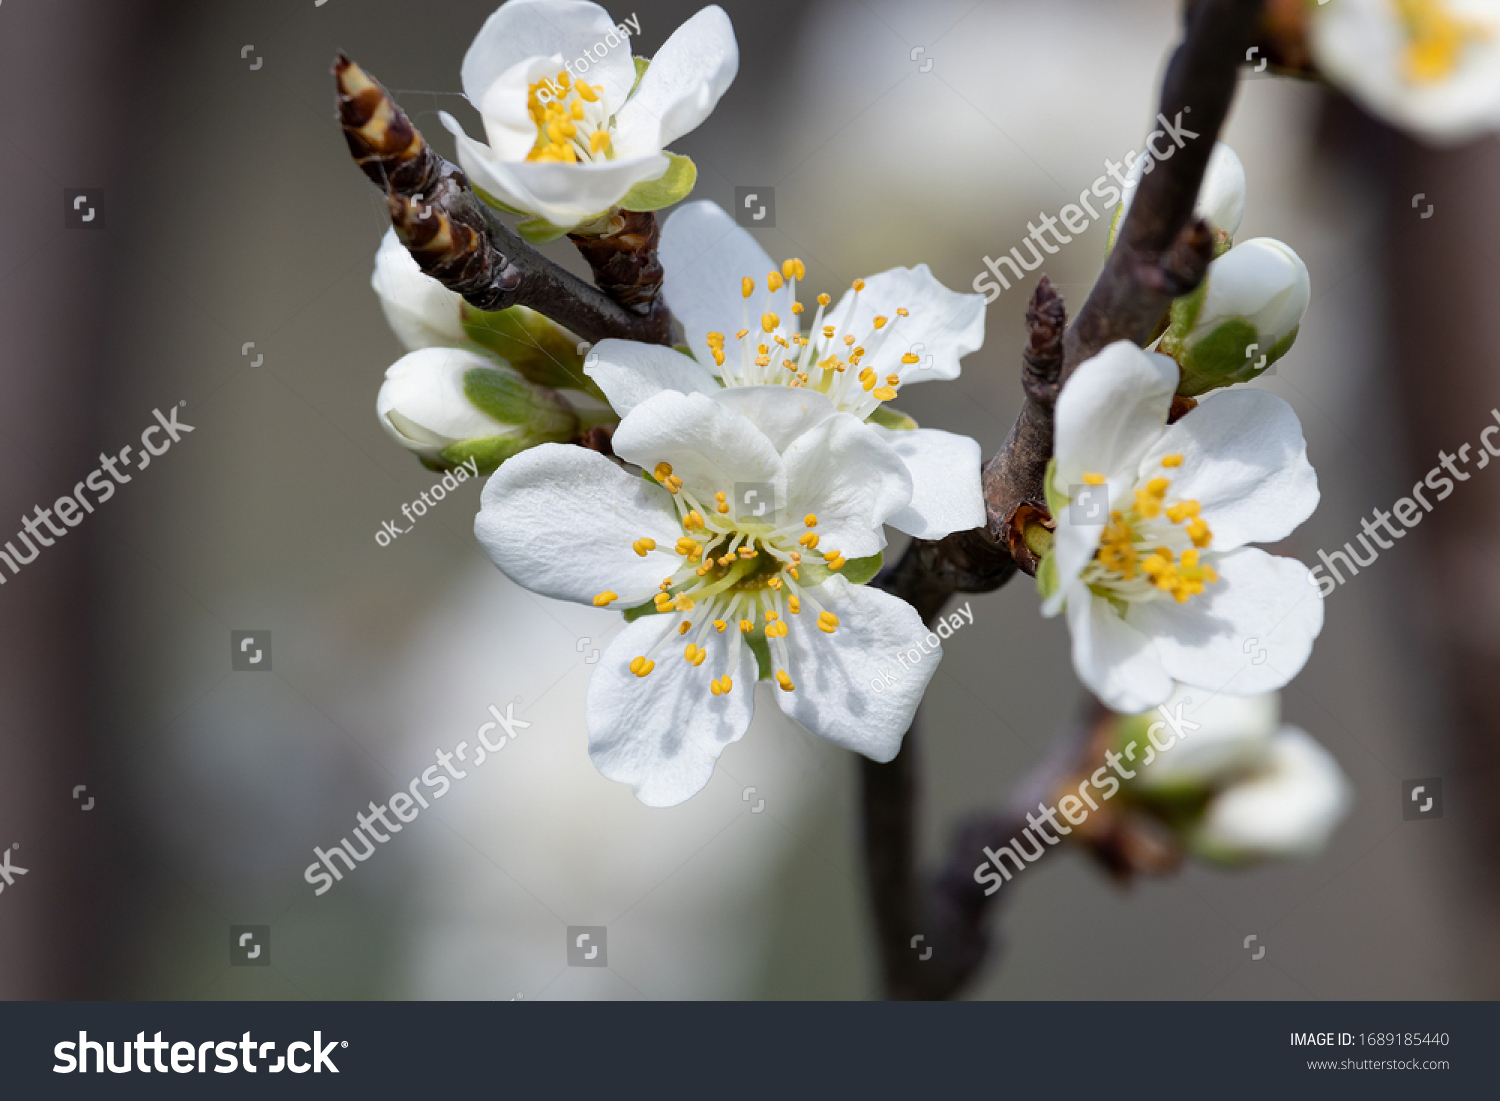 stock-photo-spring-white-flowers-with-ye